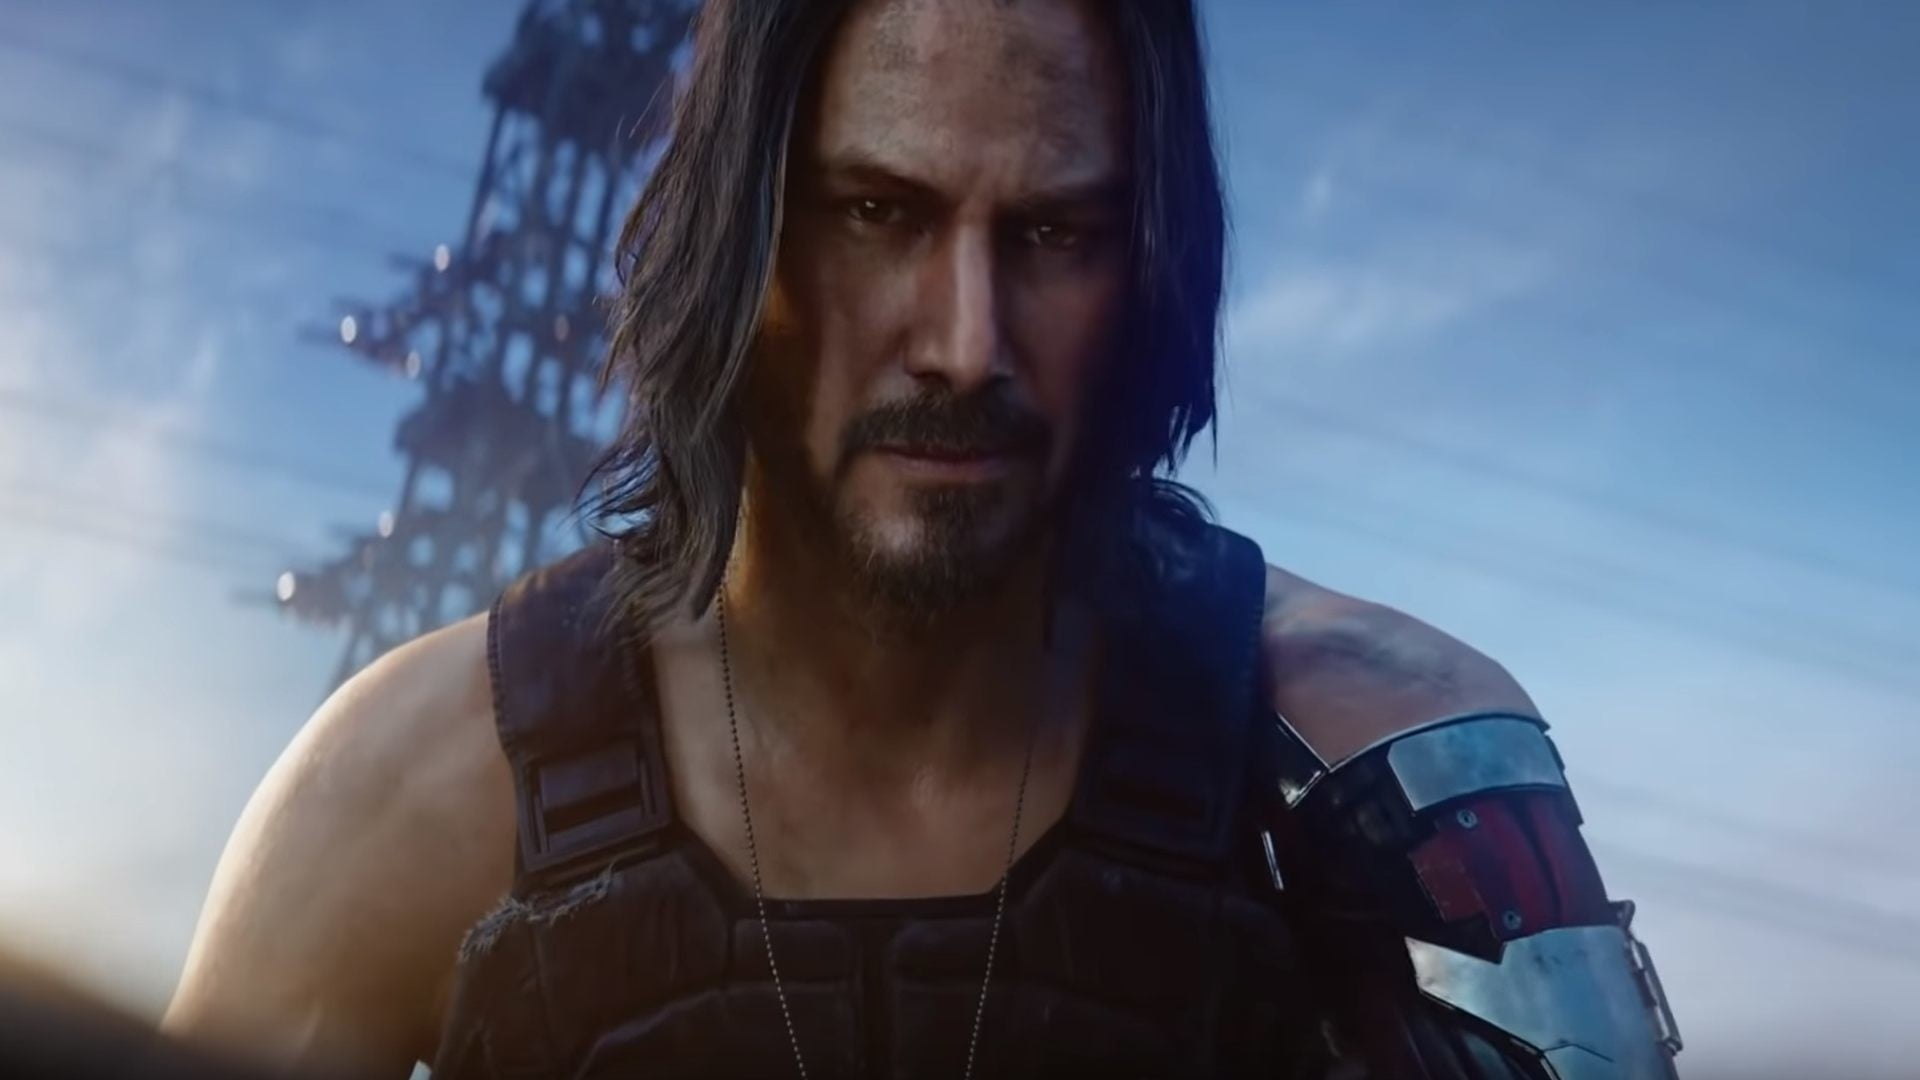 Analyst: Cyberpunk 2077 will sell 15 million copies, and potentially even more